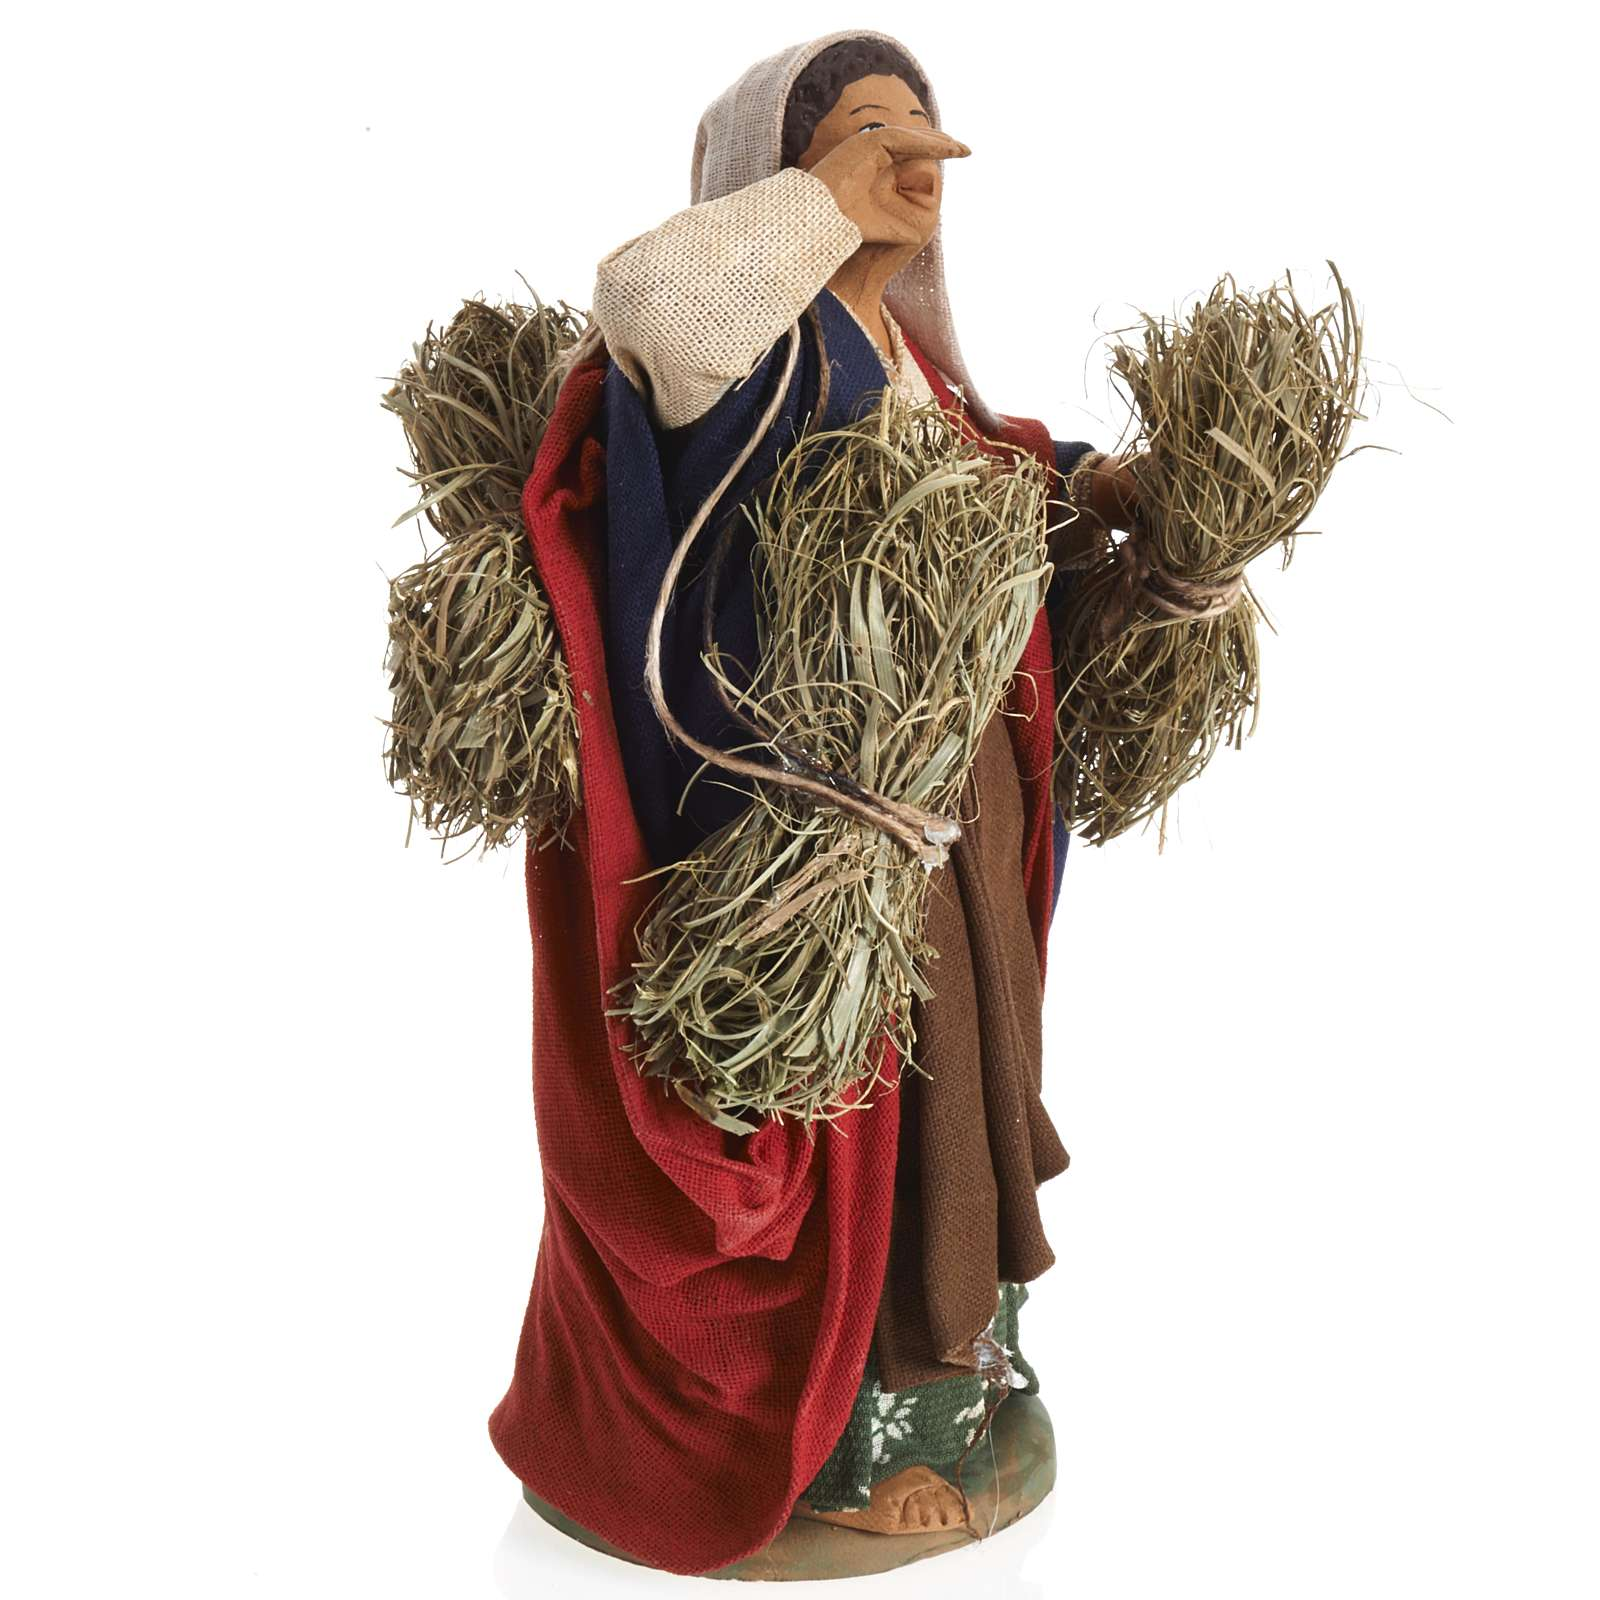 Neapolitan Nativity figurine, female farmer with bundles, 14 cm 4